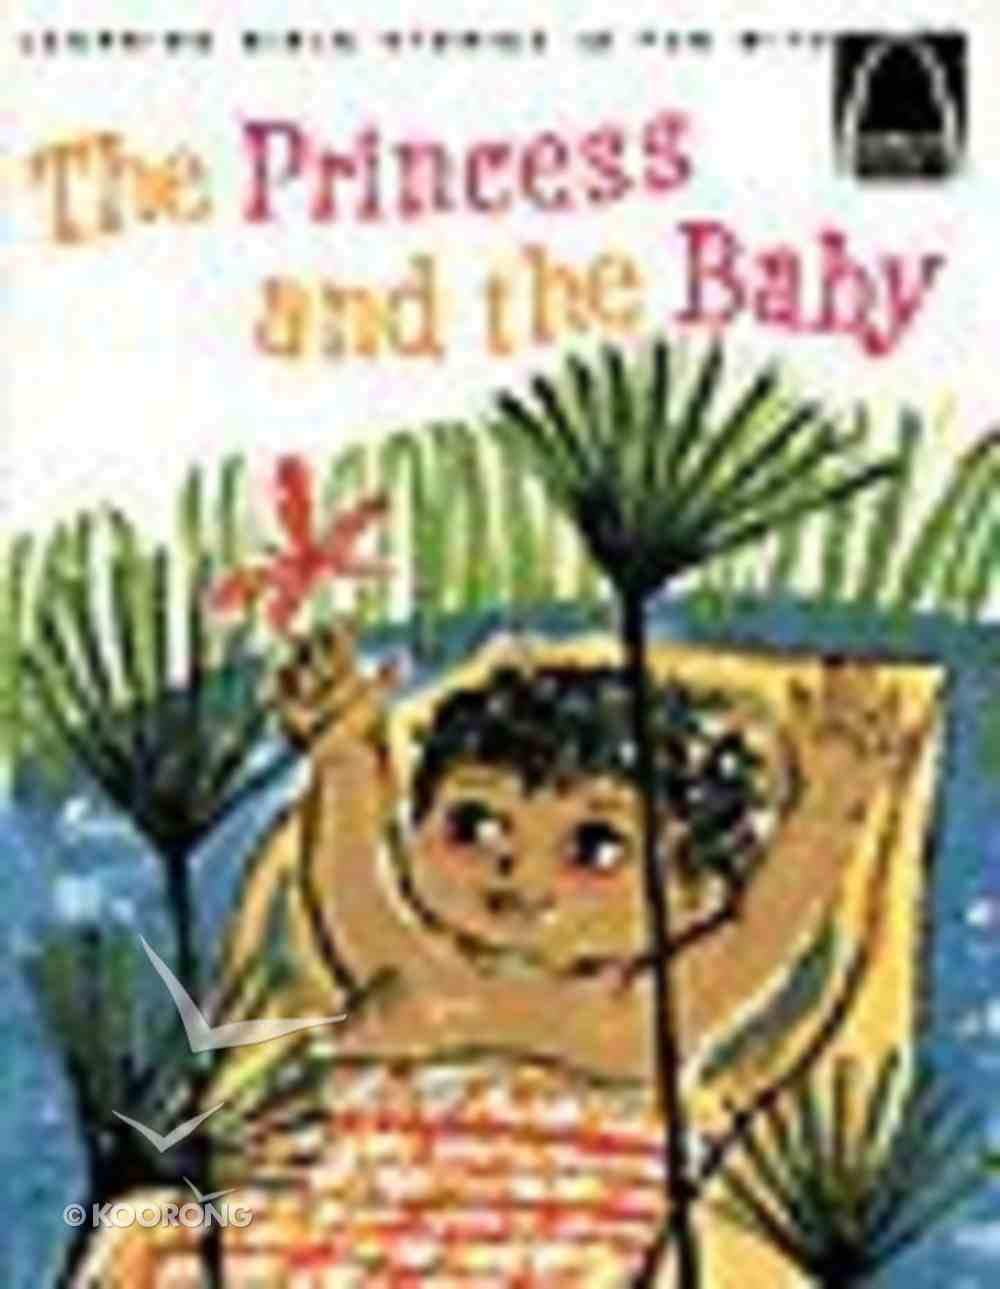 The Princess and the Baby (Arch Books Series) Paperback